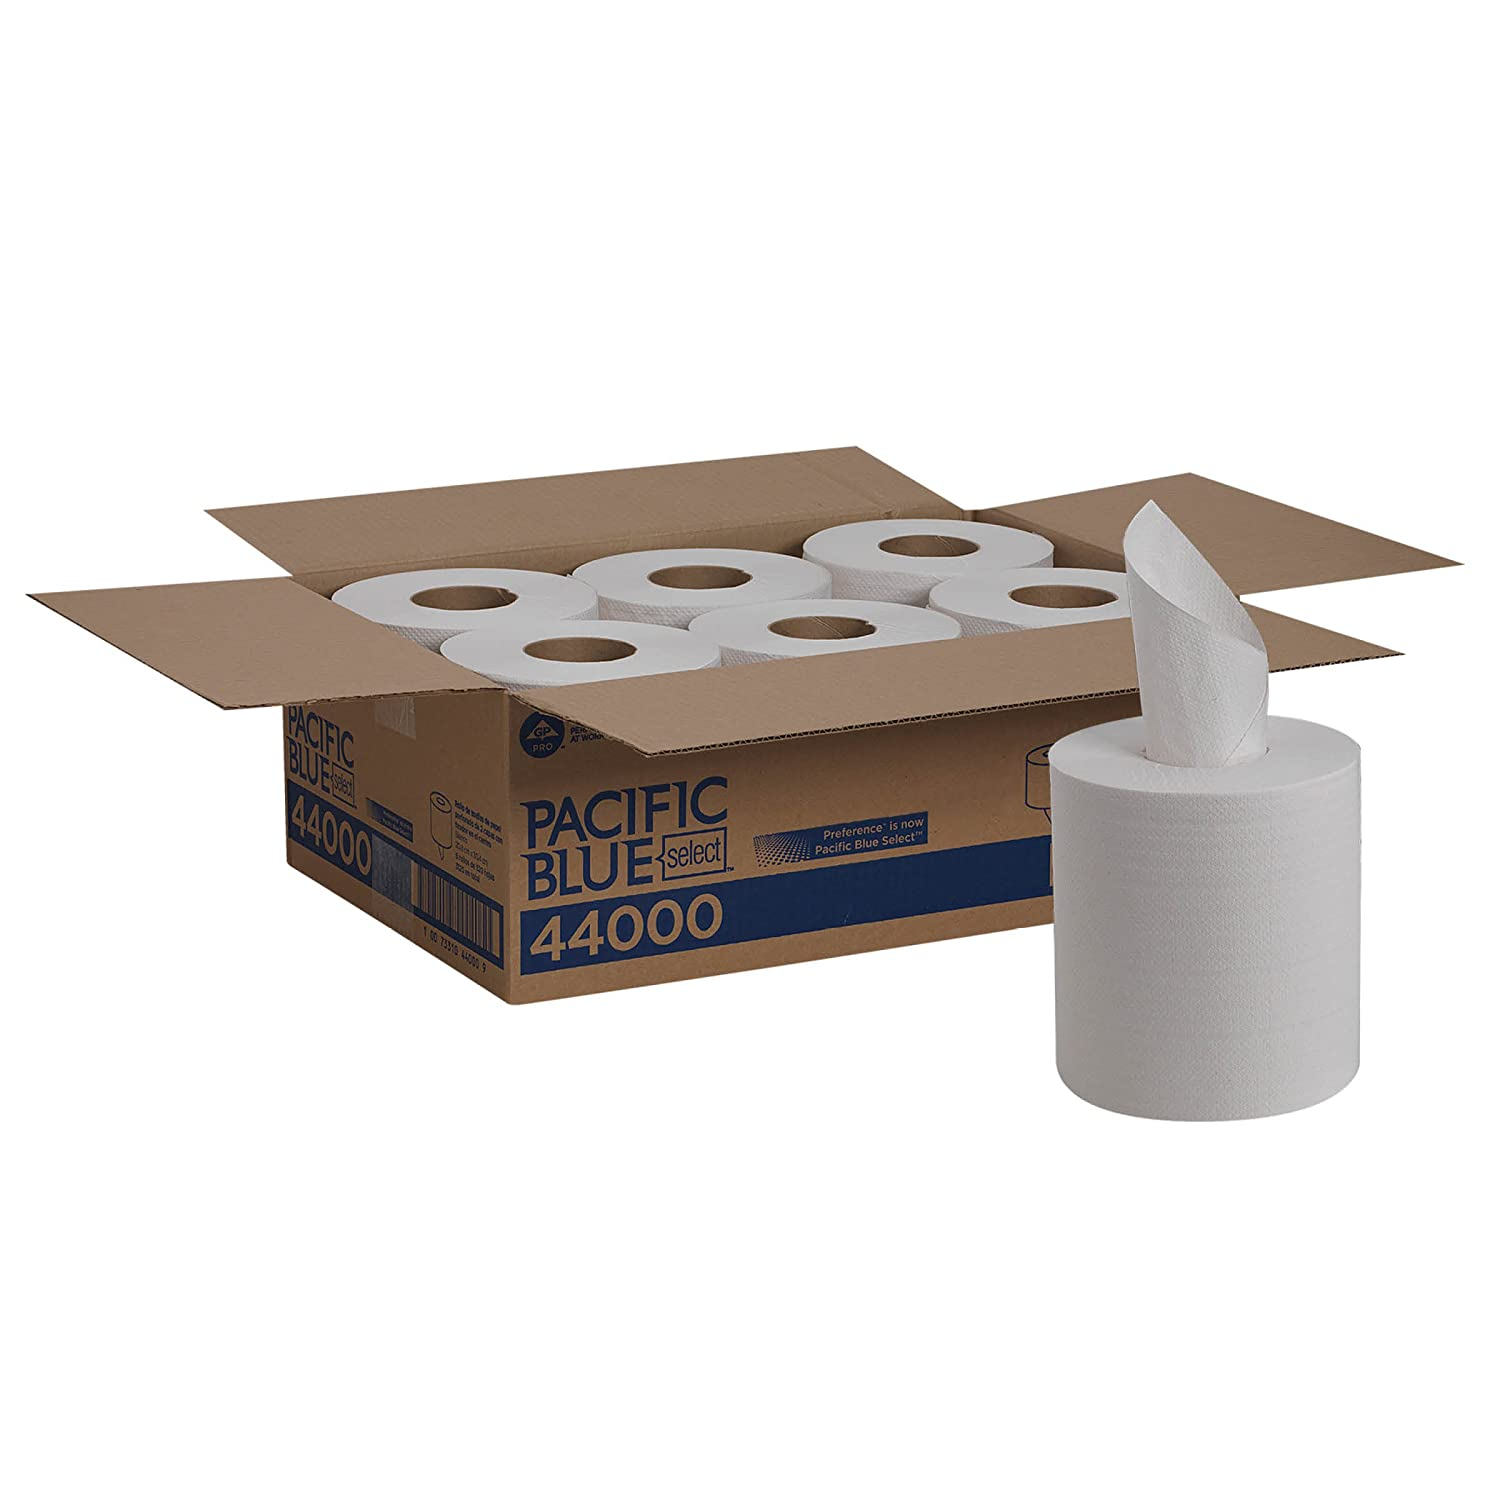 Previously Branded Acclaim 6 Rolls Per Case 1000 Sheets Per Roll Georgia-Pacific 44110 by GP PRO Pacific Blue Basic Centerpull 1-Ply Perforated Paper Towels White